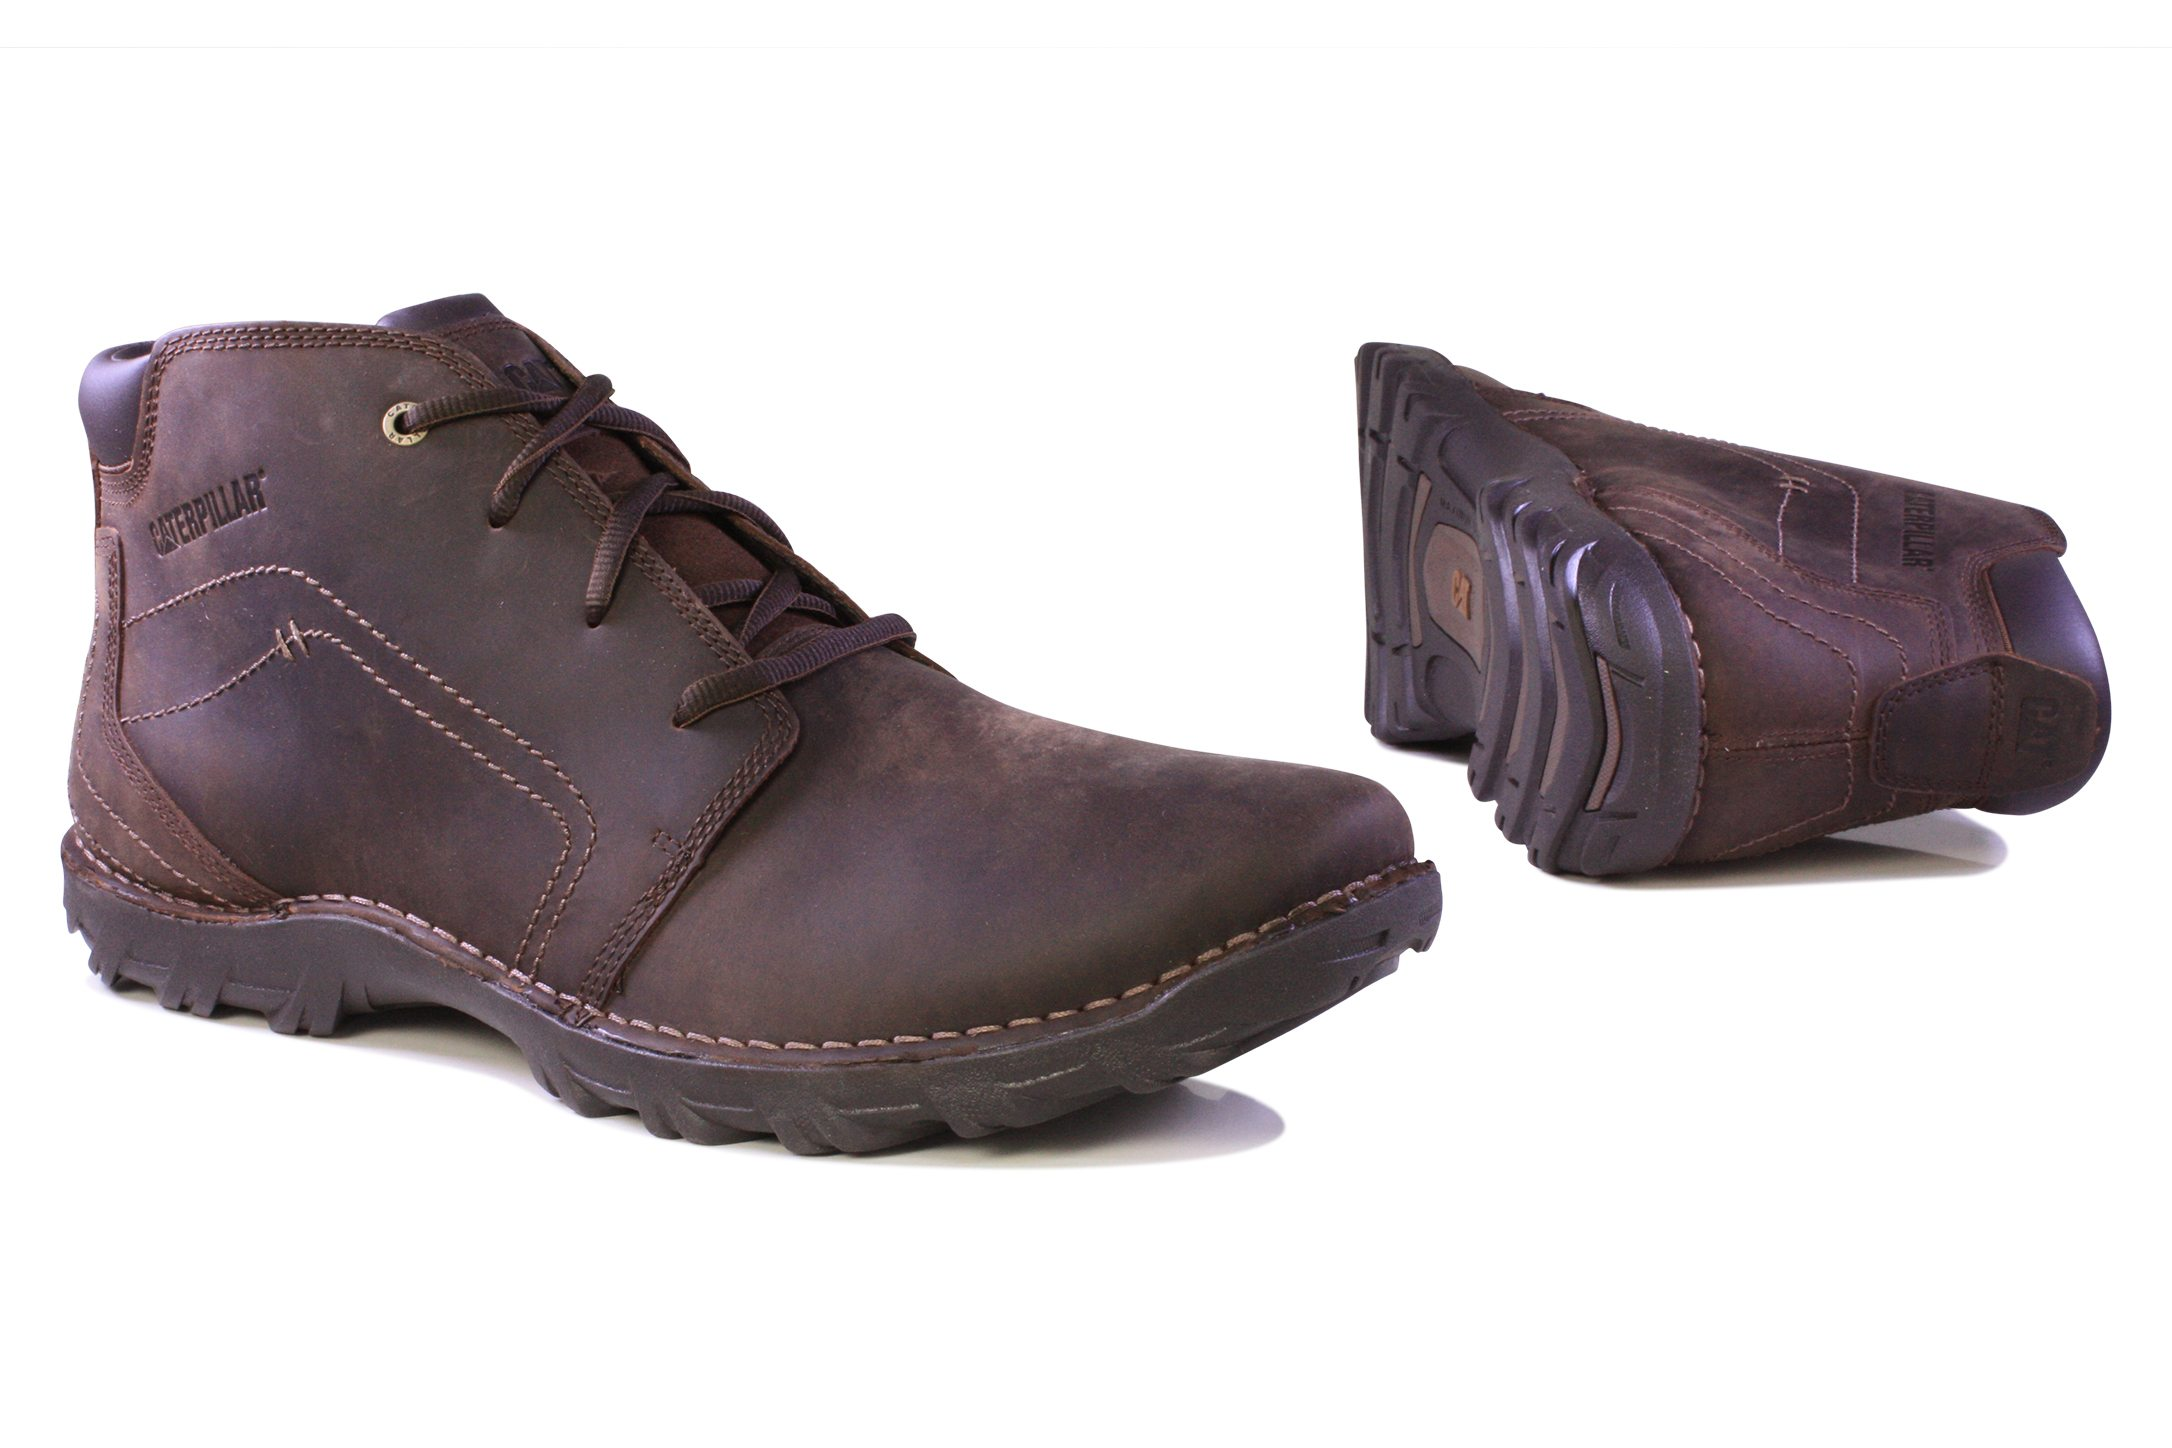 36bc6aaf45a Men's Shoe Styles | Shoe Brands | Men's Shoe Centre